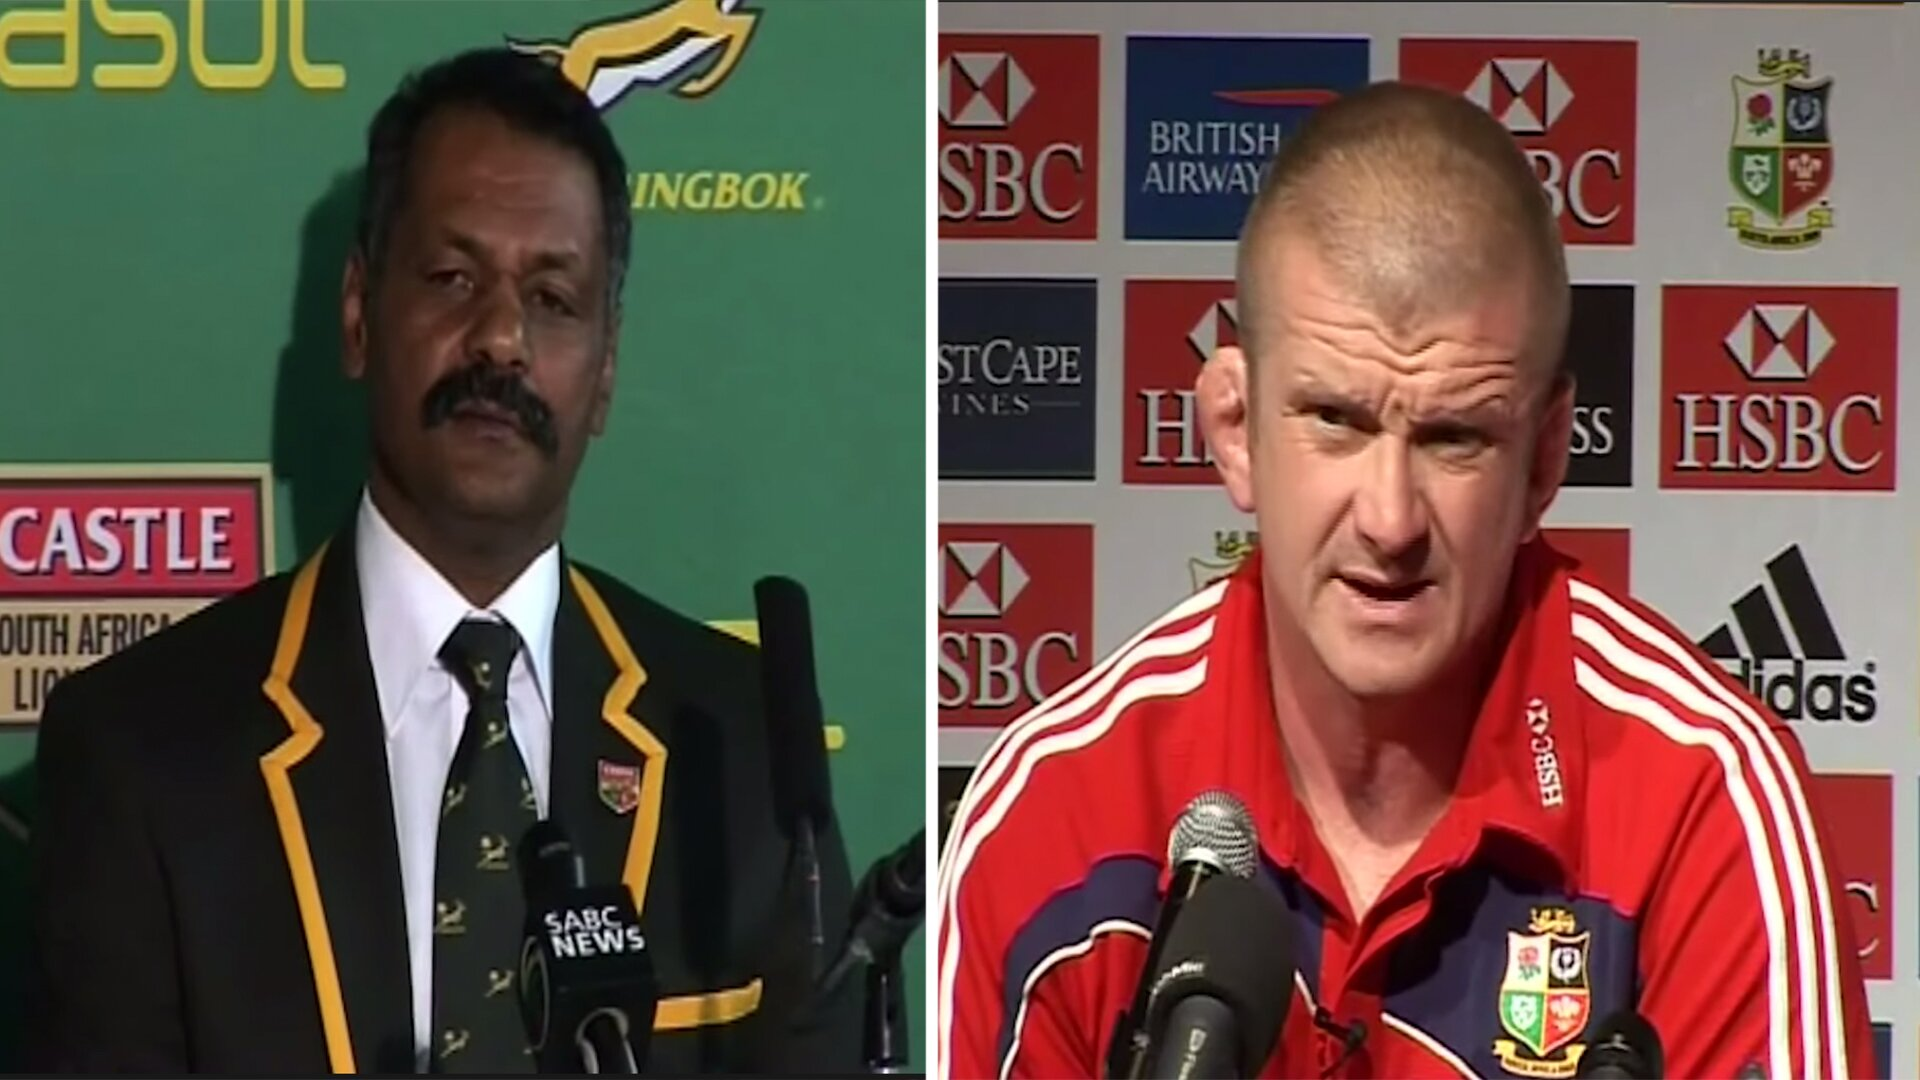 Shocking new video shows just how arrogant the Springbok rugby team was in 2009